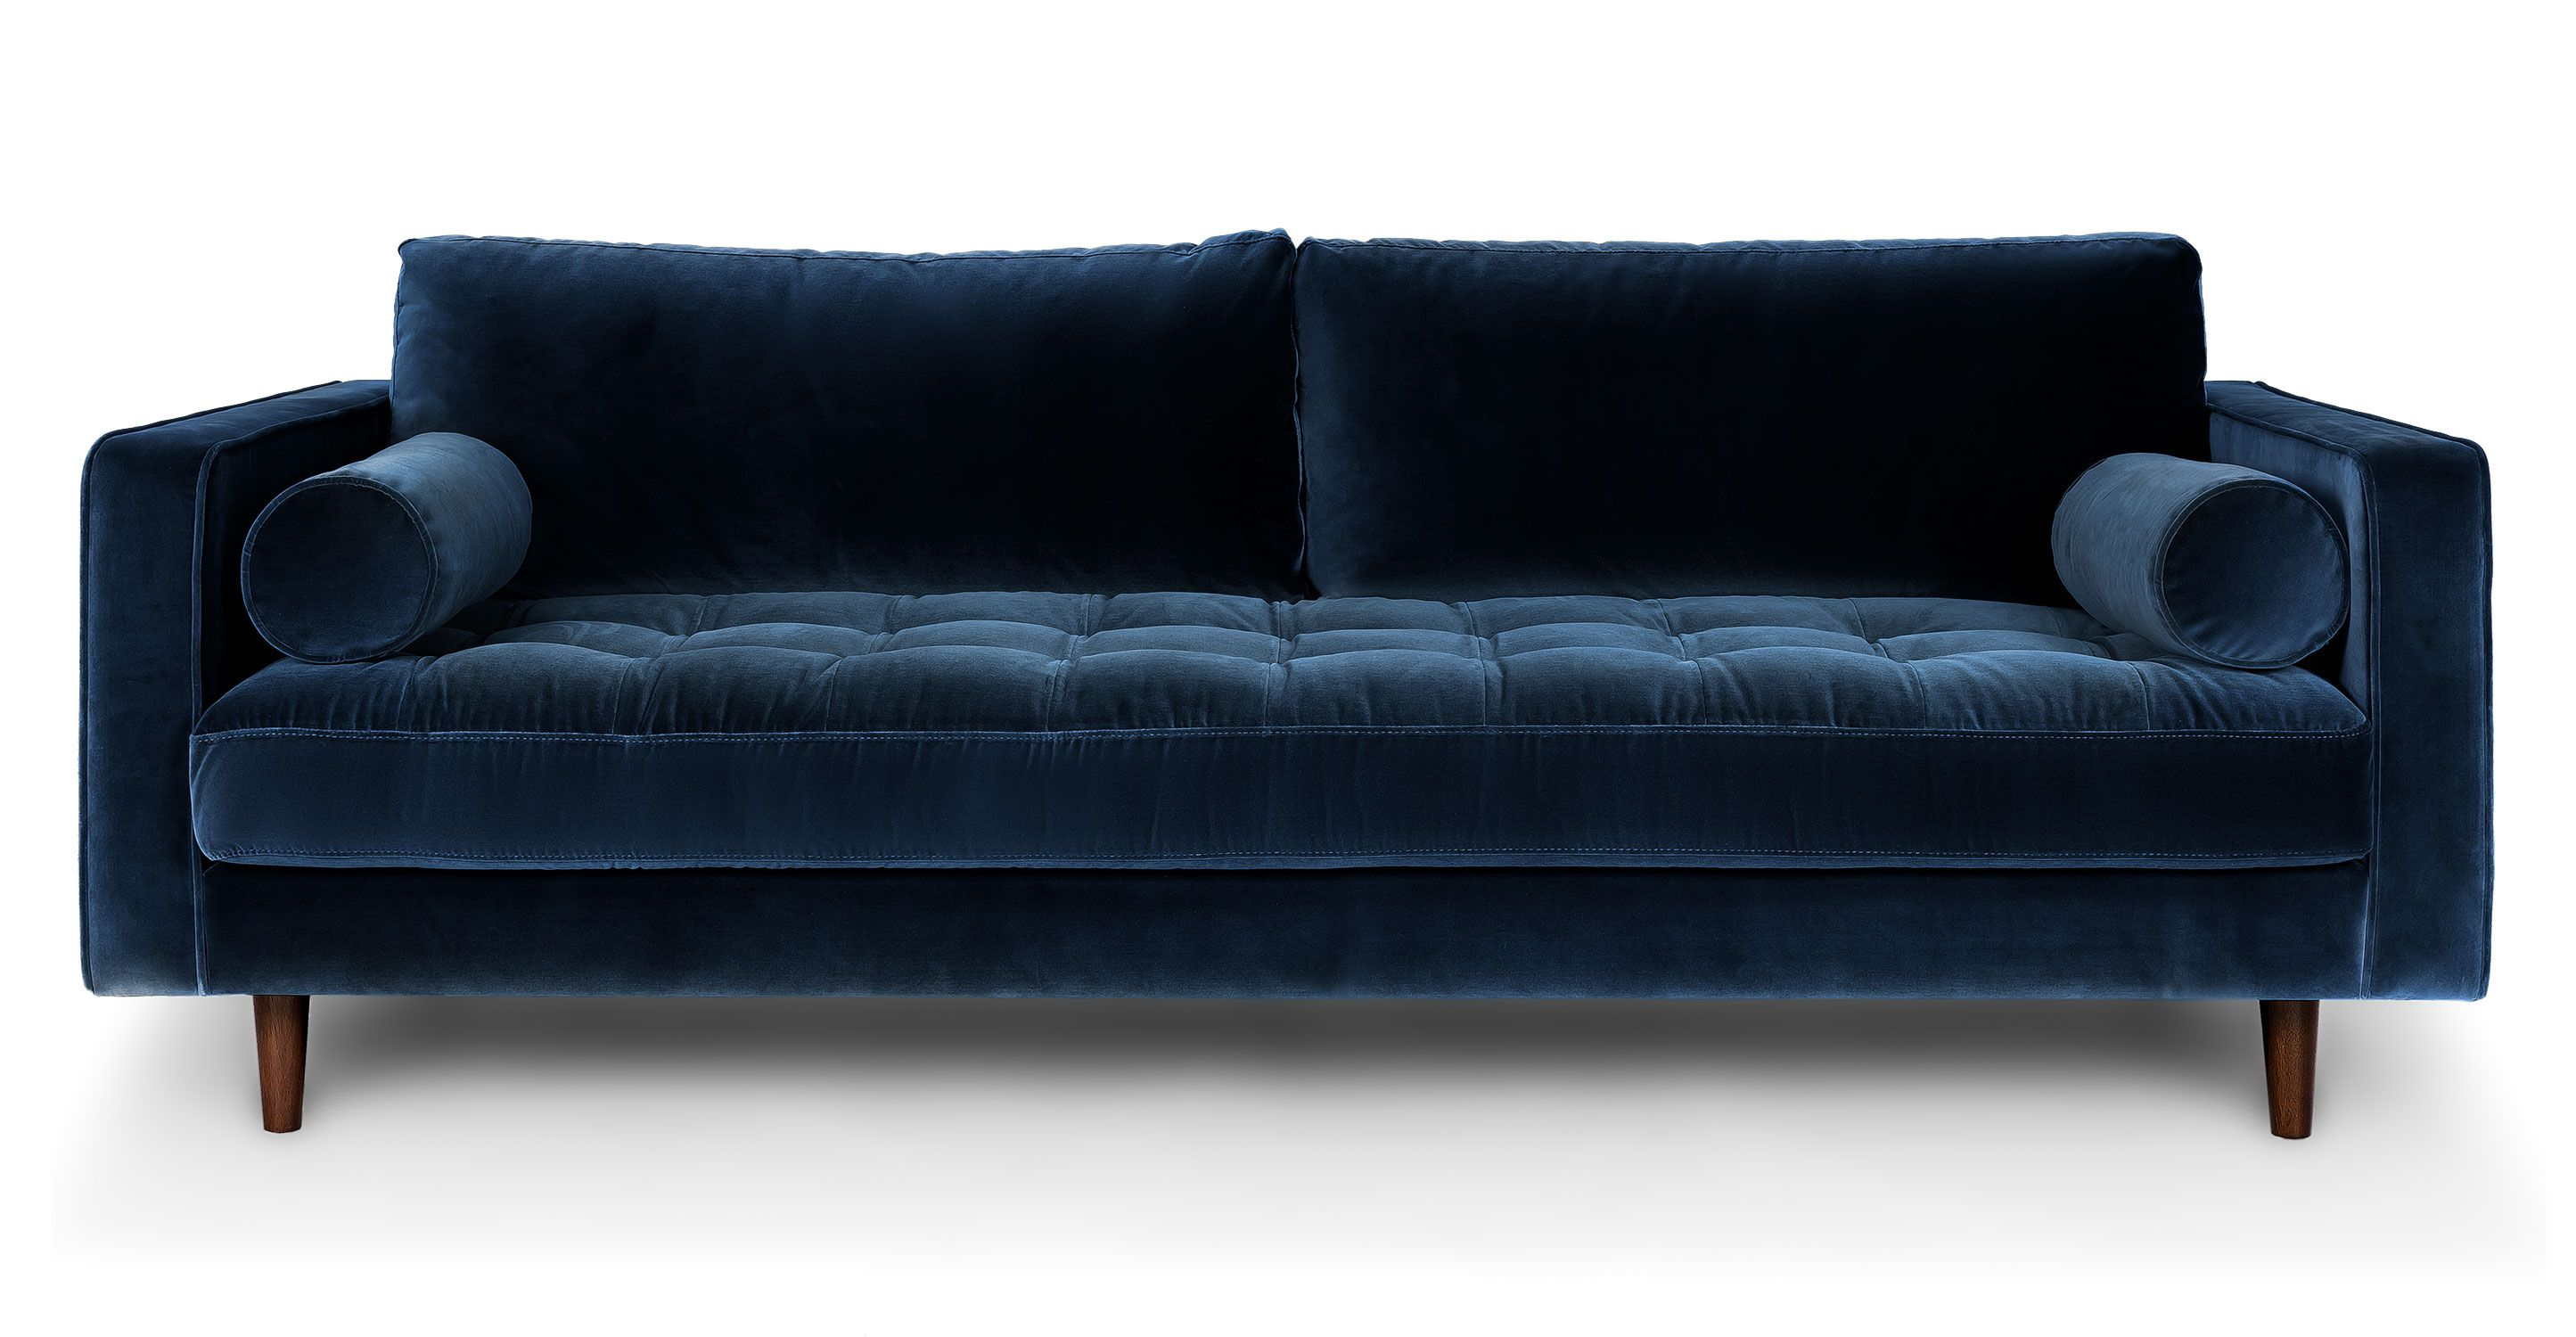 Sven Cascadia Blue Sofa Sofas Article Modern Mid Century And Scandinavian Furniture